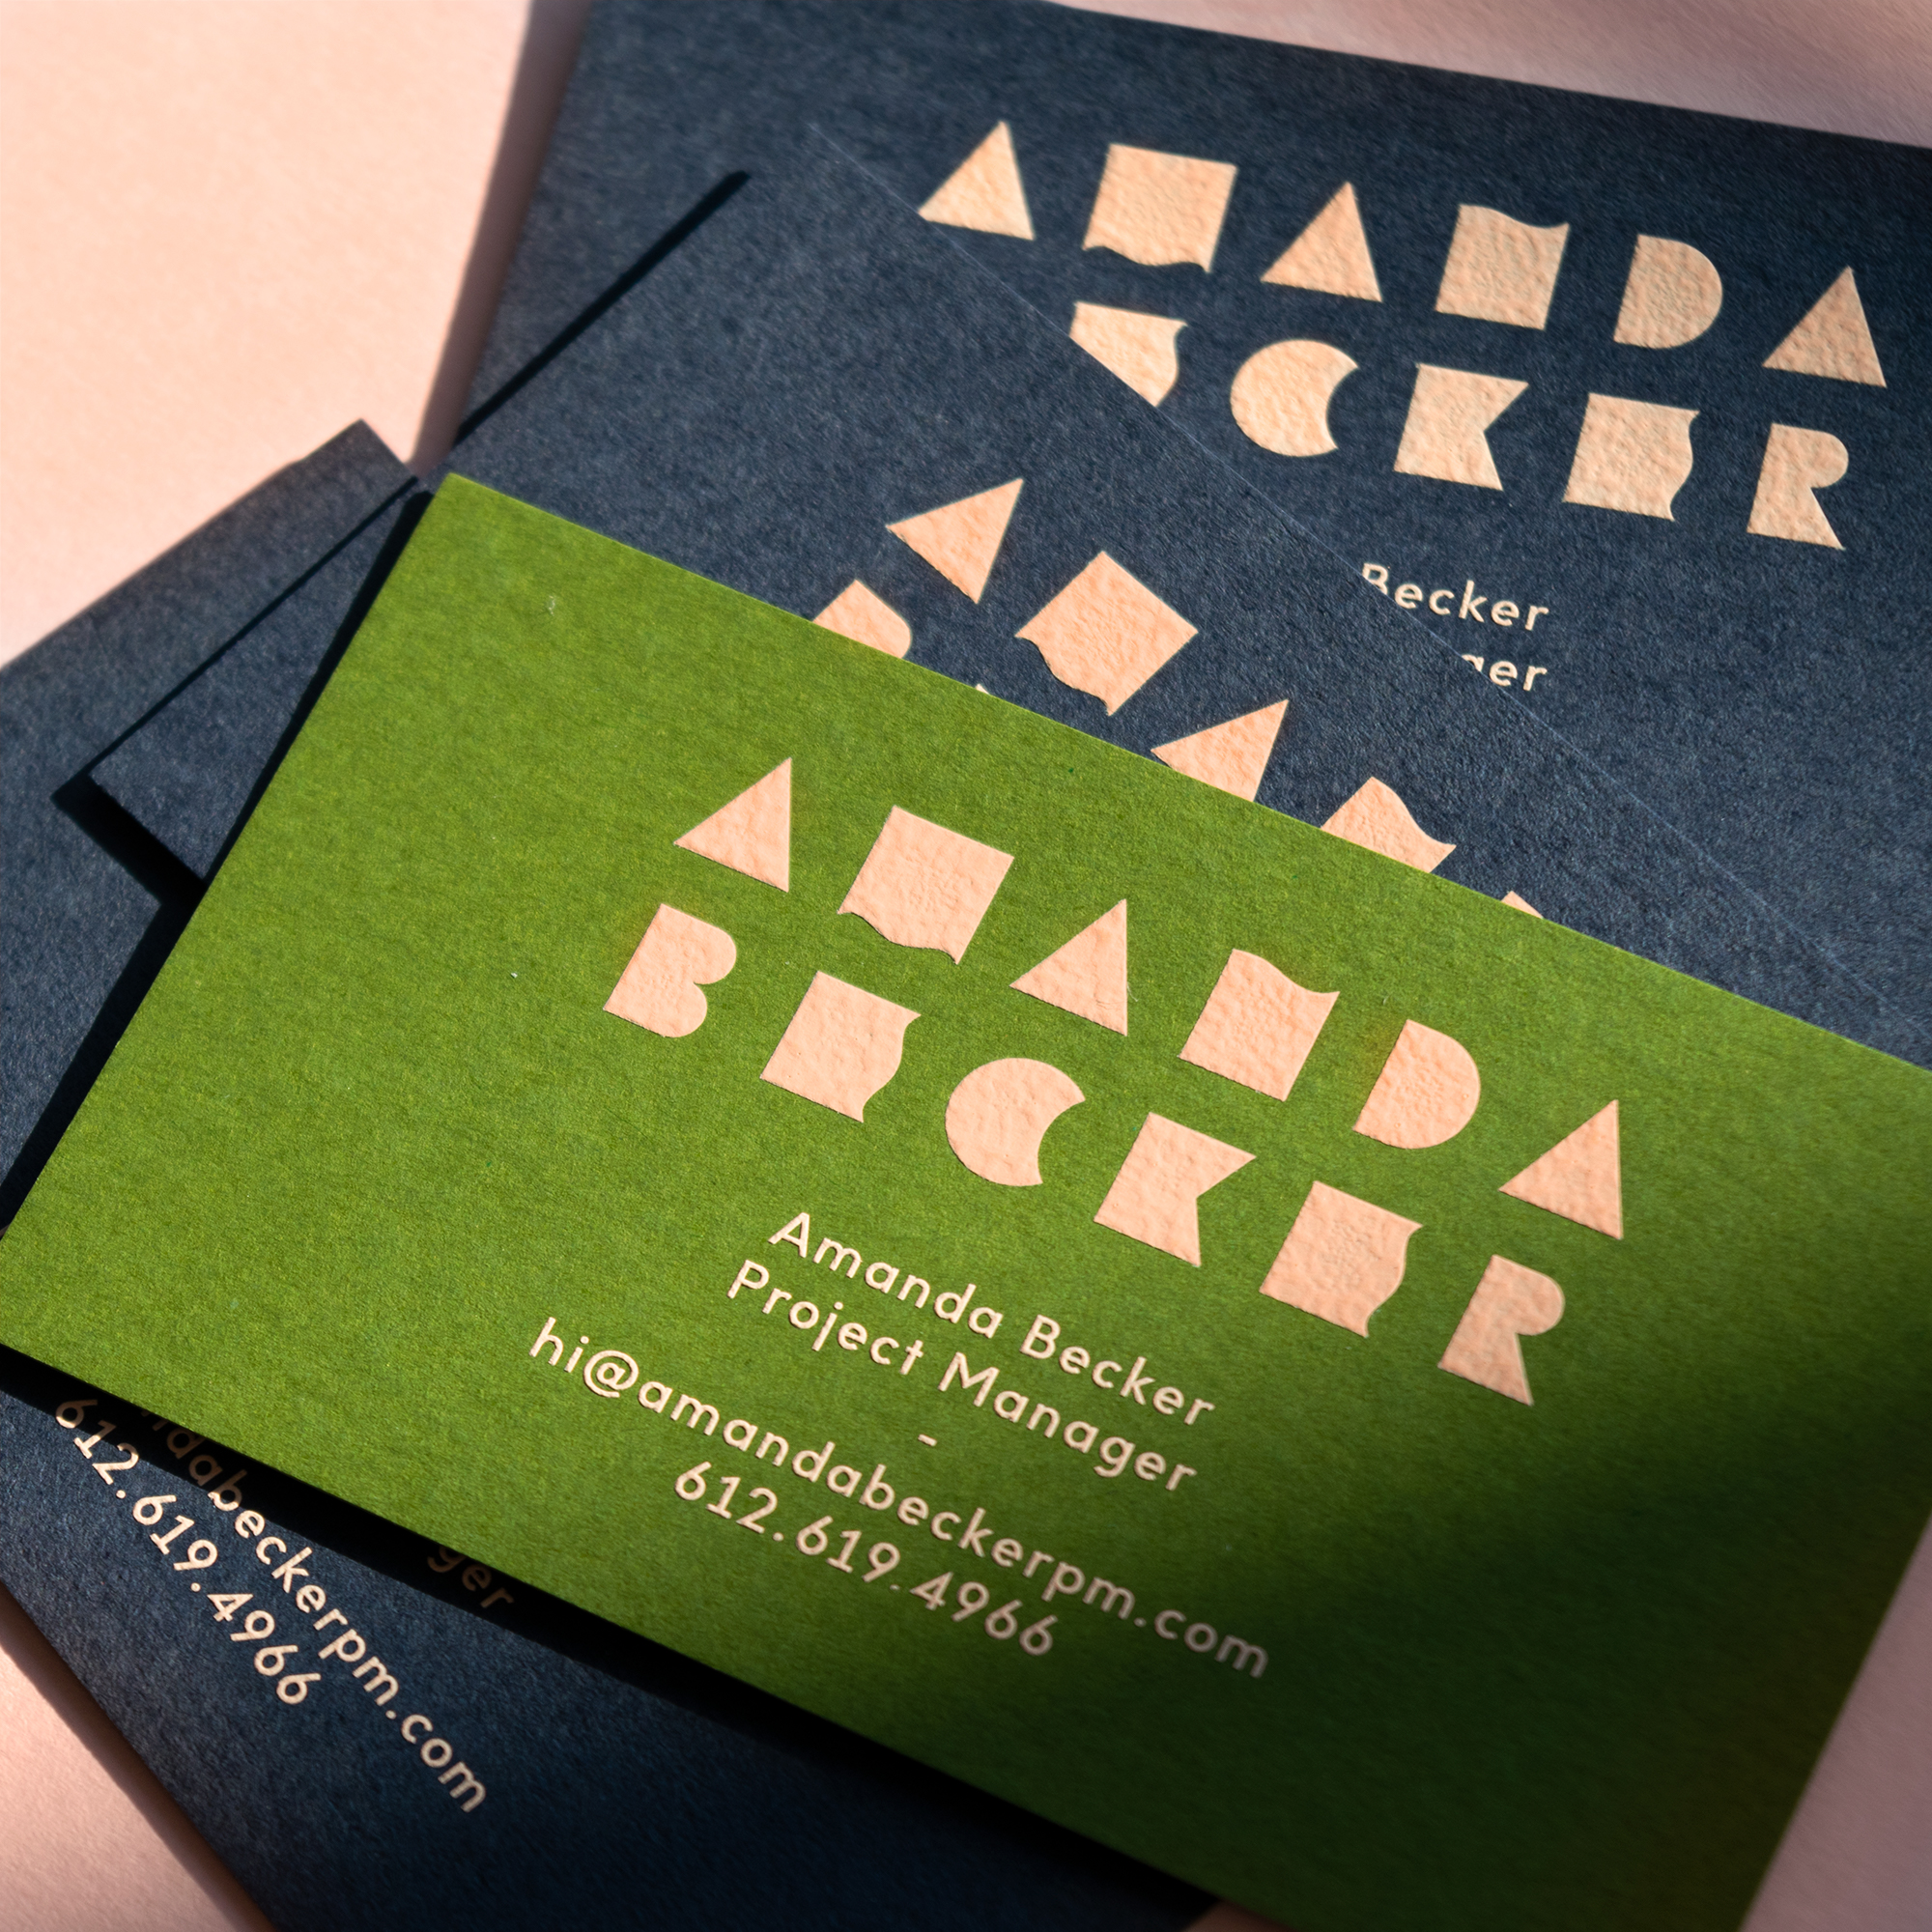 Amanda Becker identity and custom typography designed by Abby Haddican.